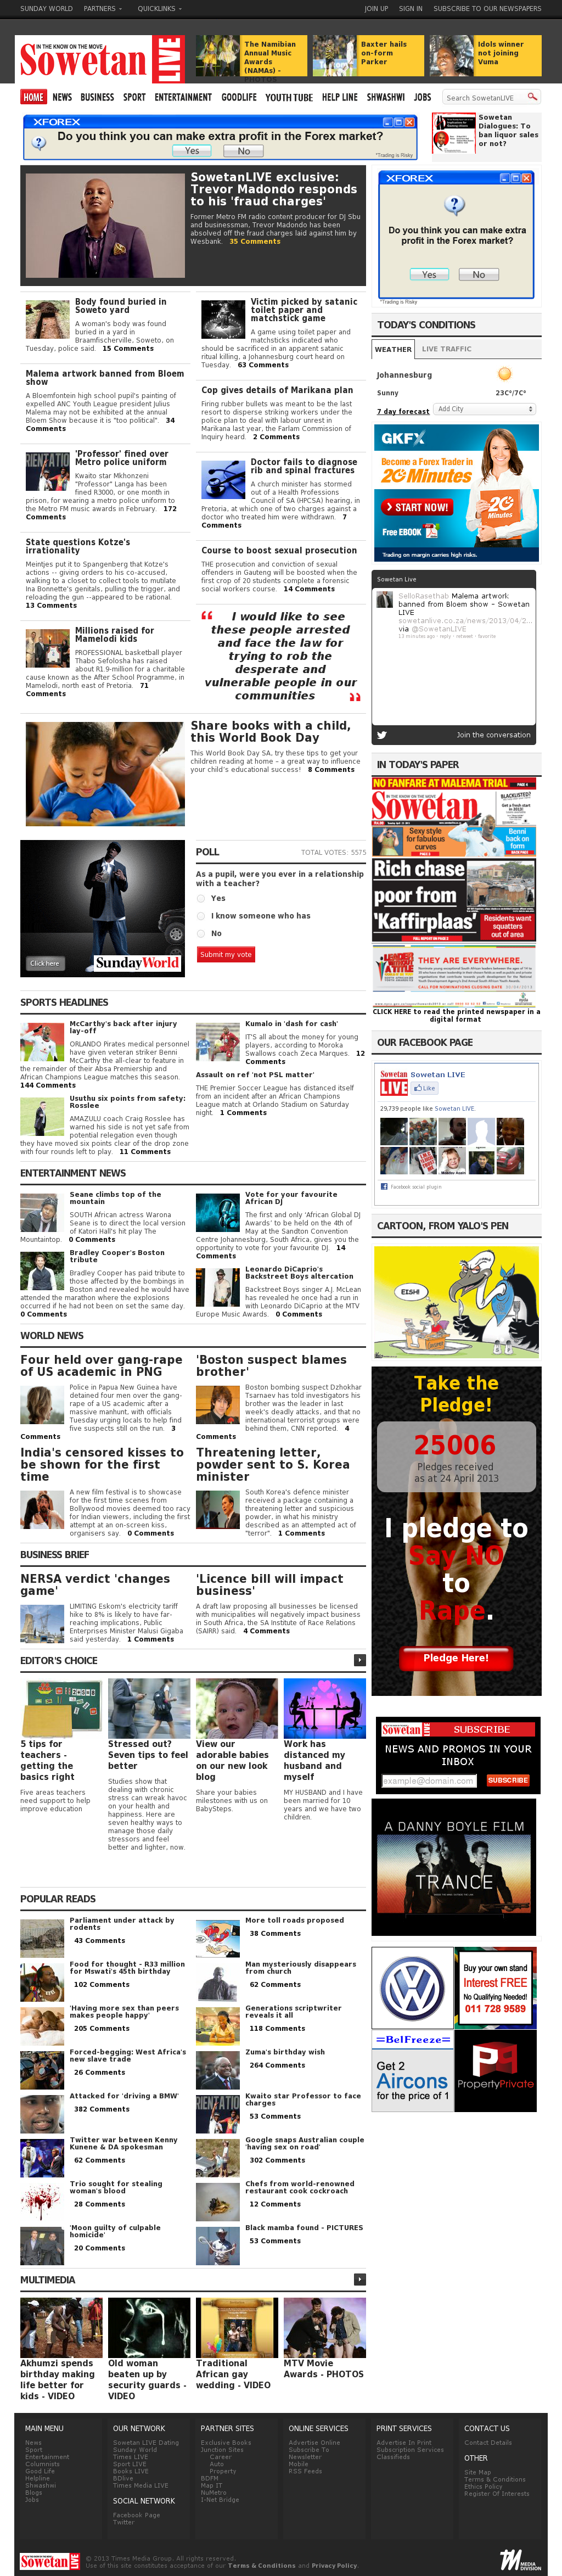 Sowetan Live at Wednesday April 24, 2013, 4:20 a.m. UTC